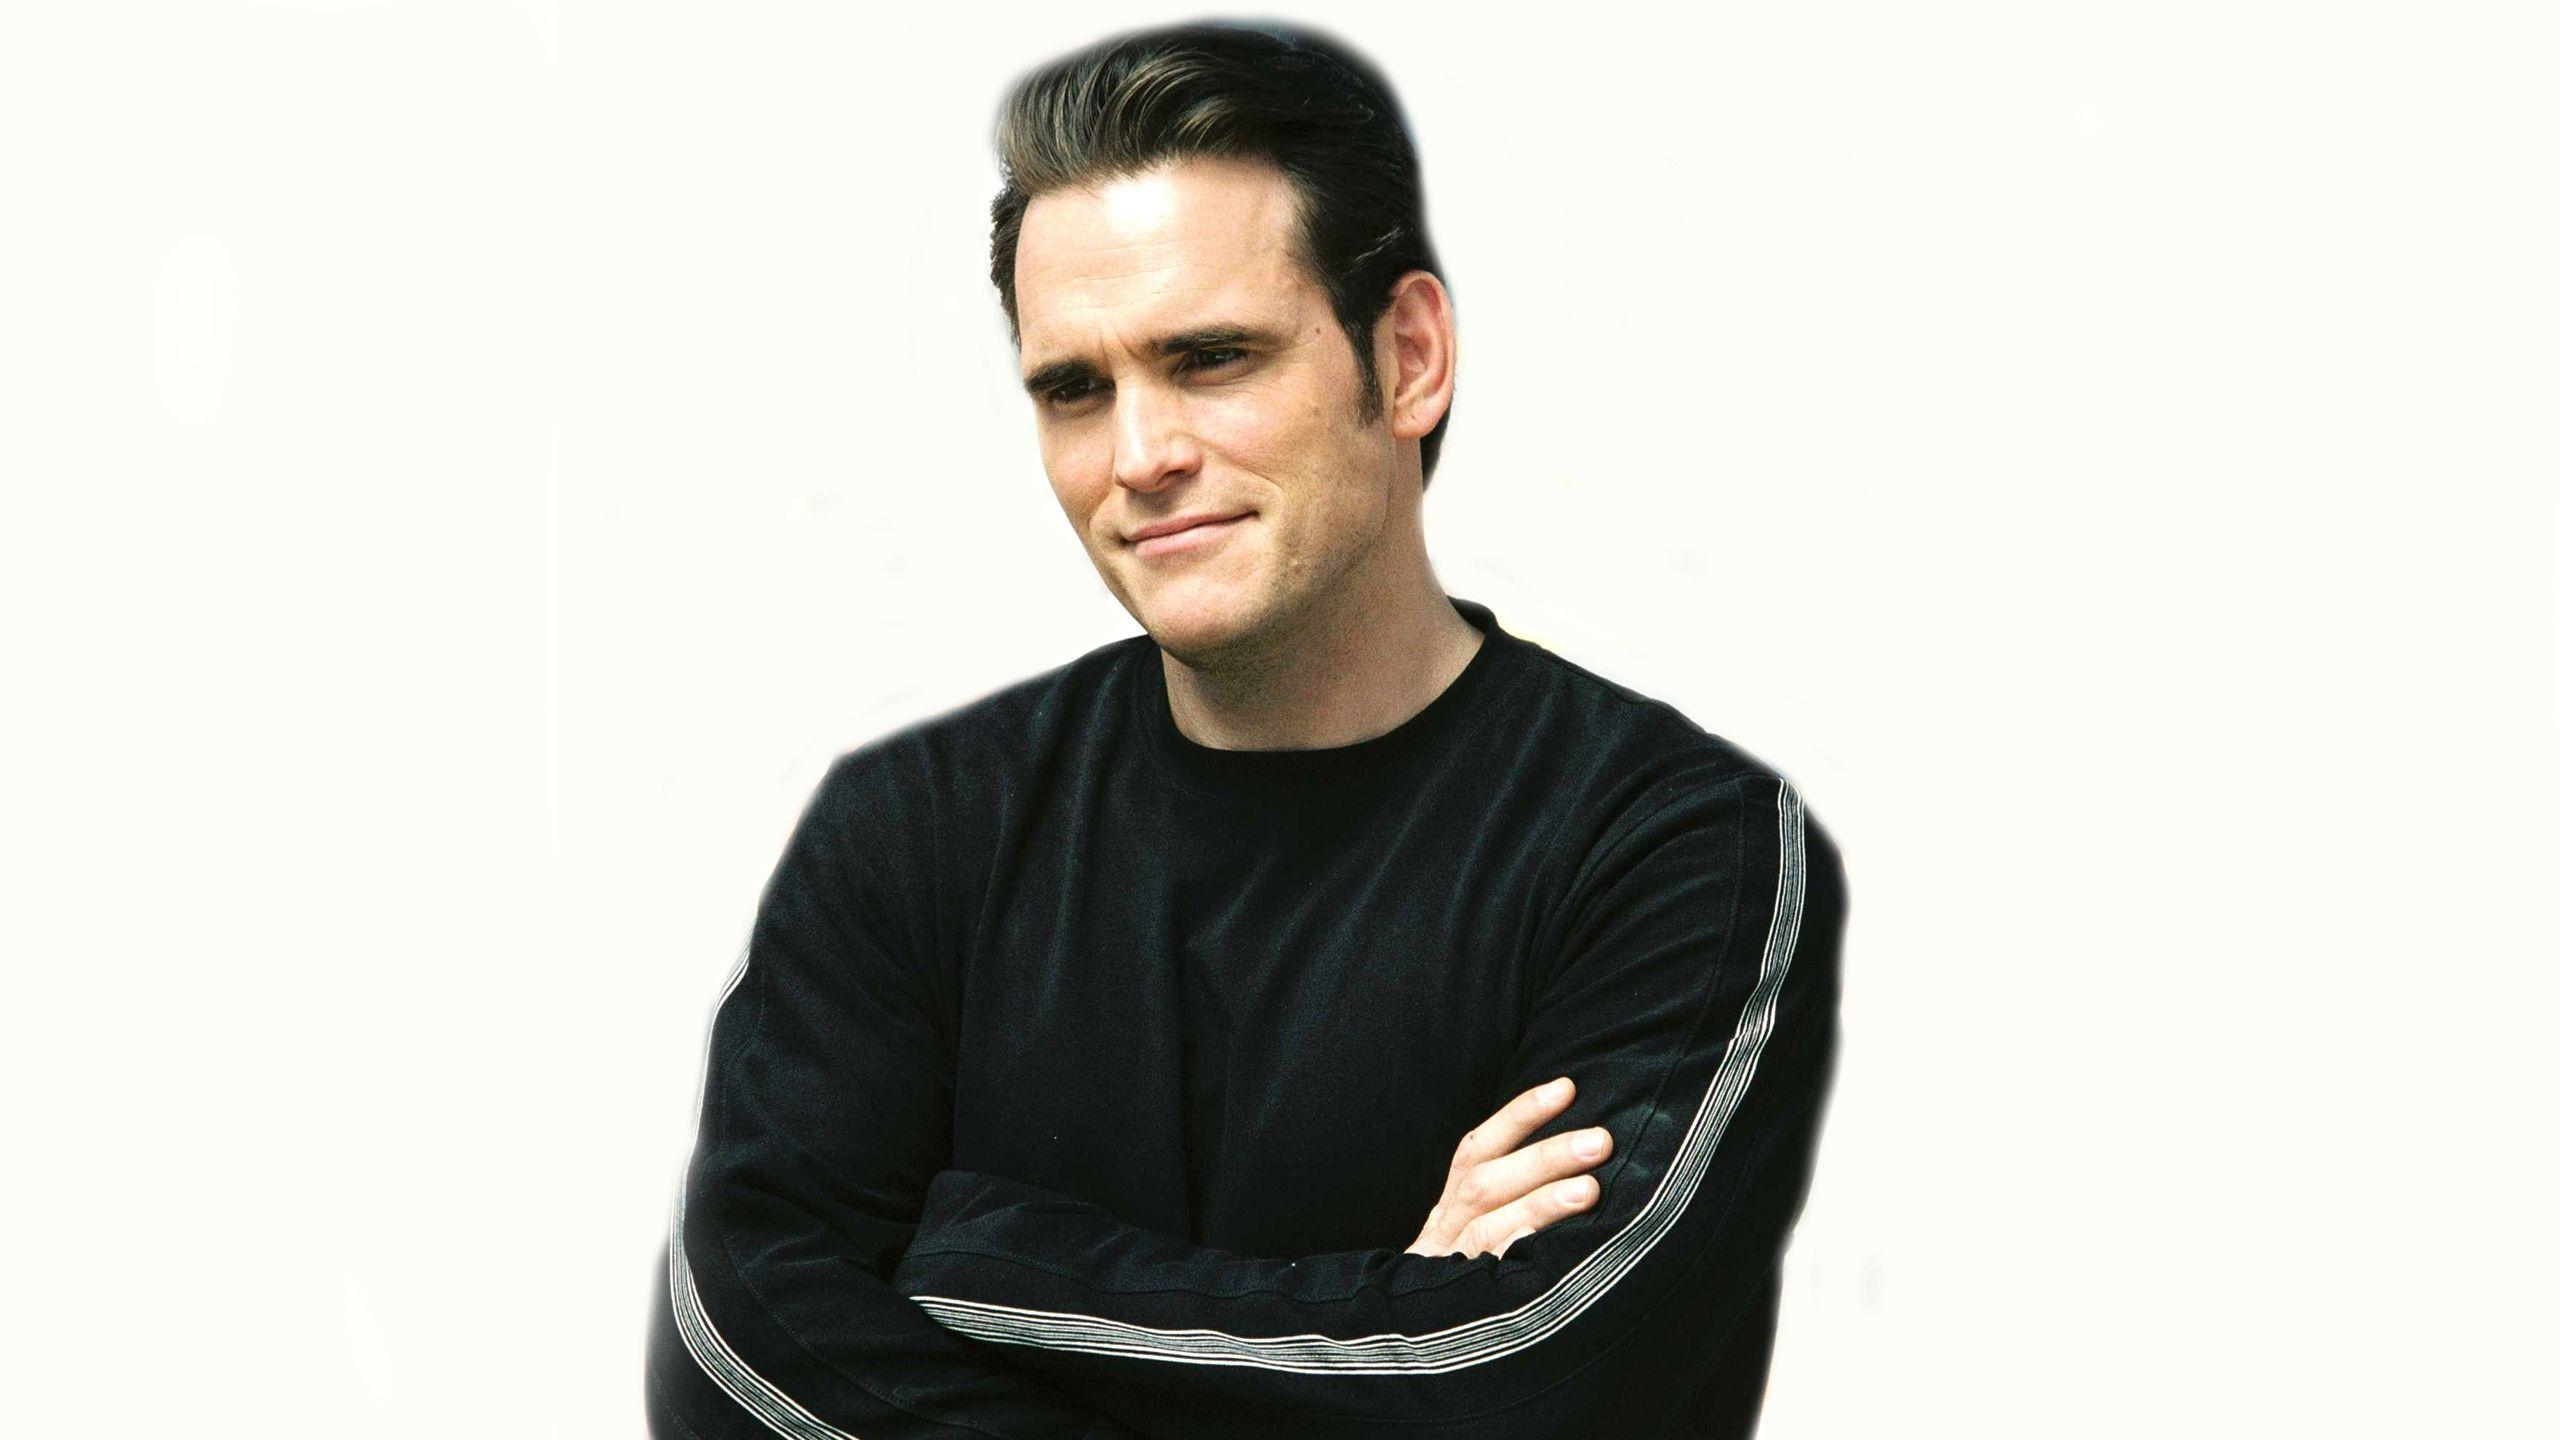 Male Celebrities: Matt Dillon, picture nr. 61120